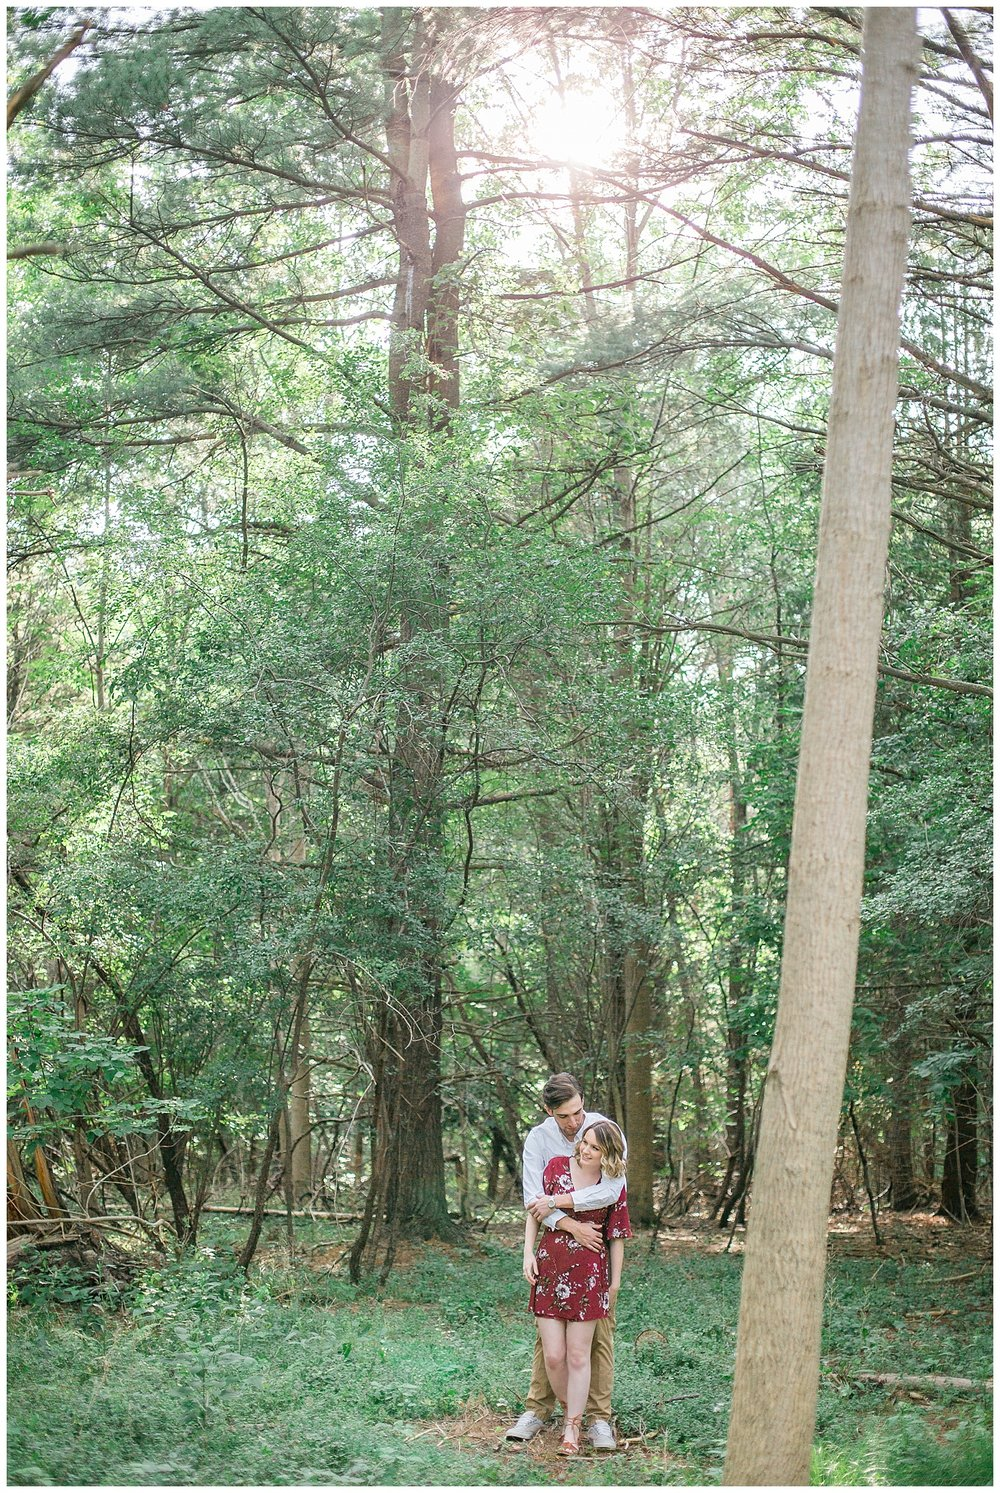 Tanya and Ryan - Sweetheart session - Lass & Beau - Geneseo NY-6_Buffalo wedding photography.jpg